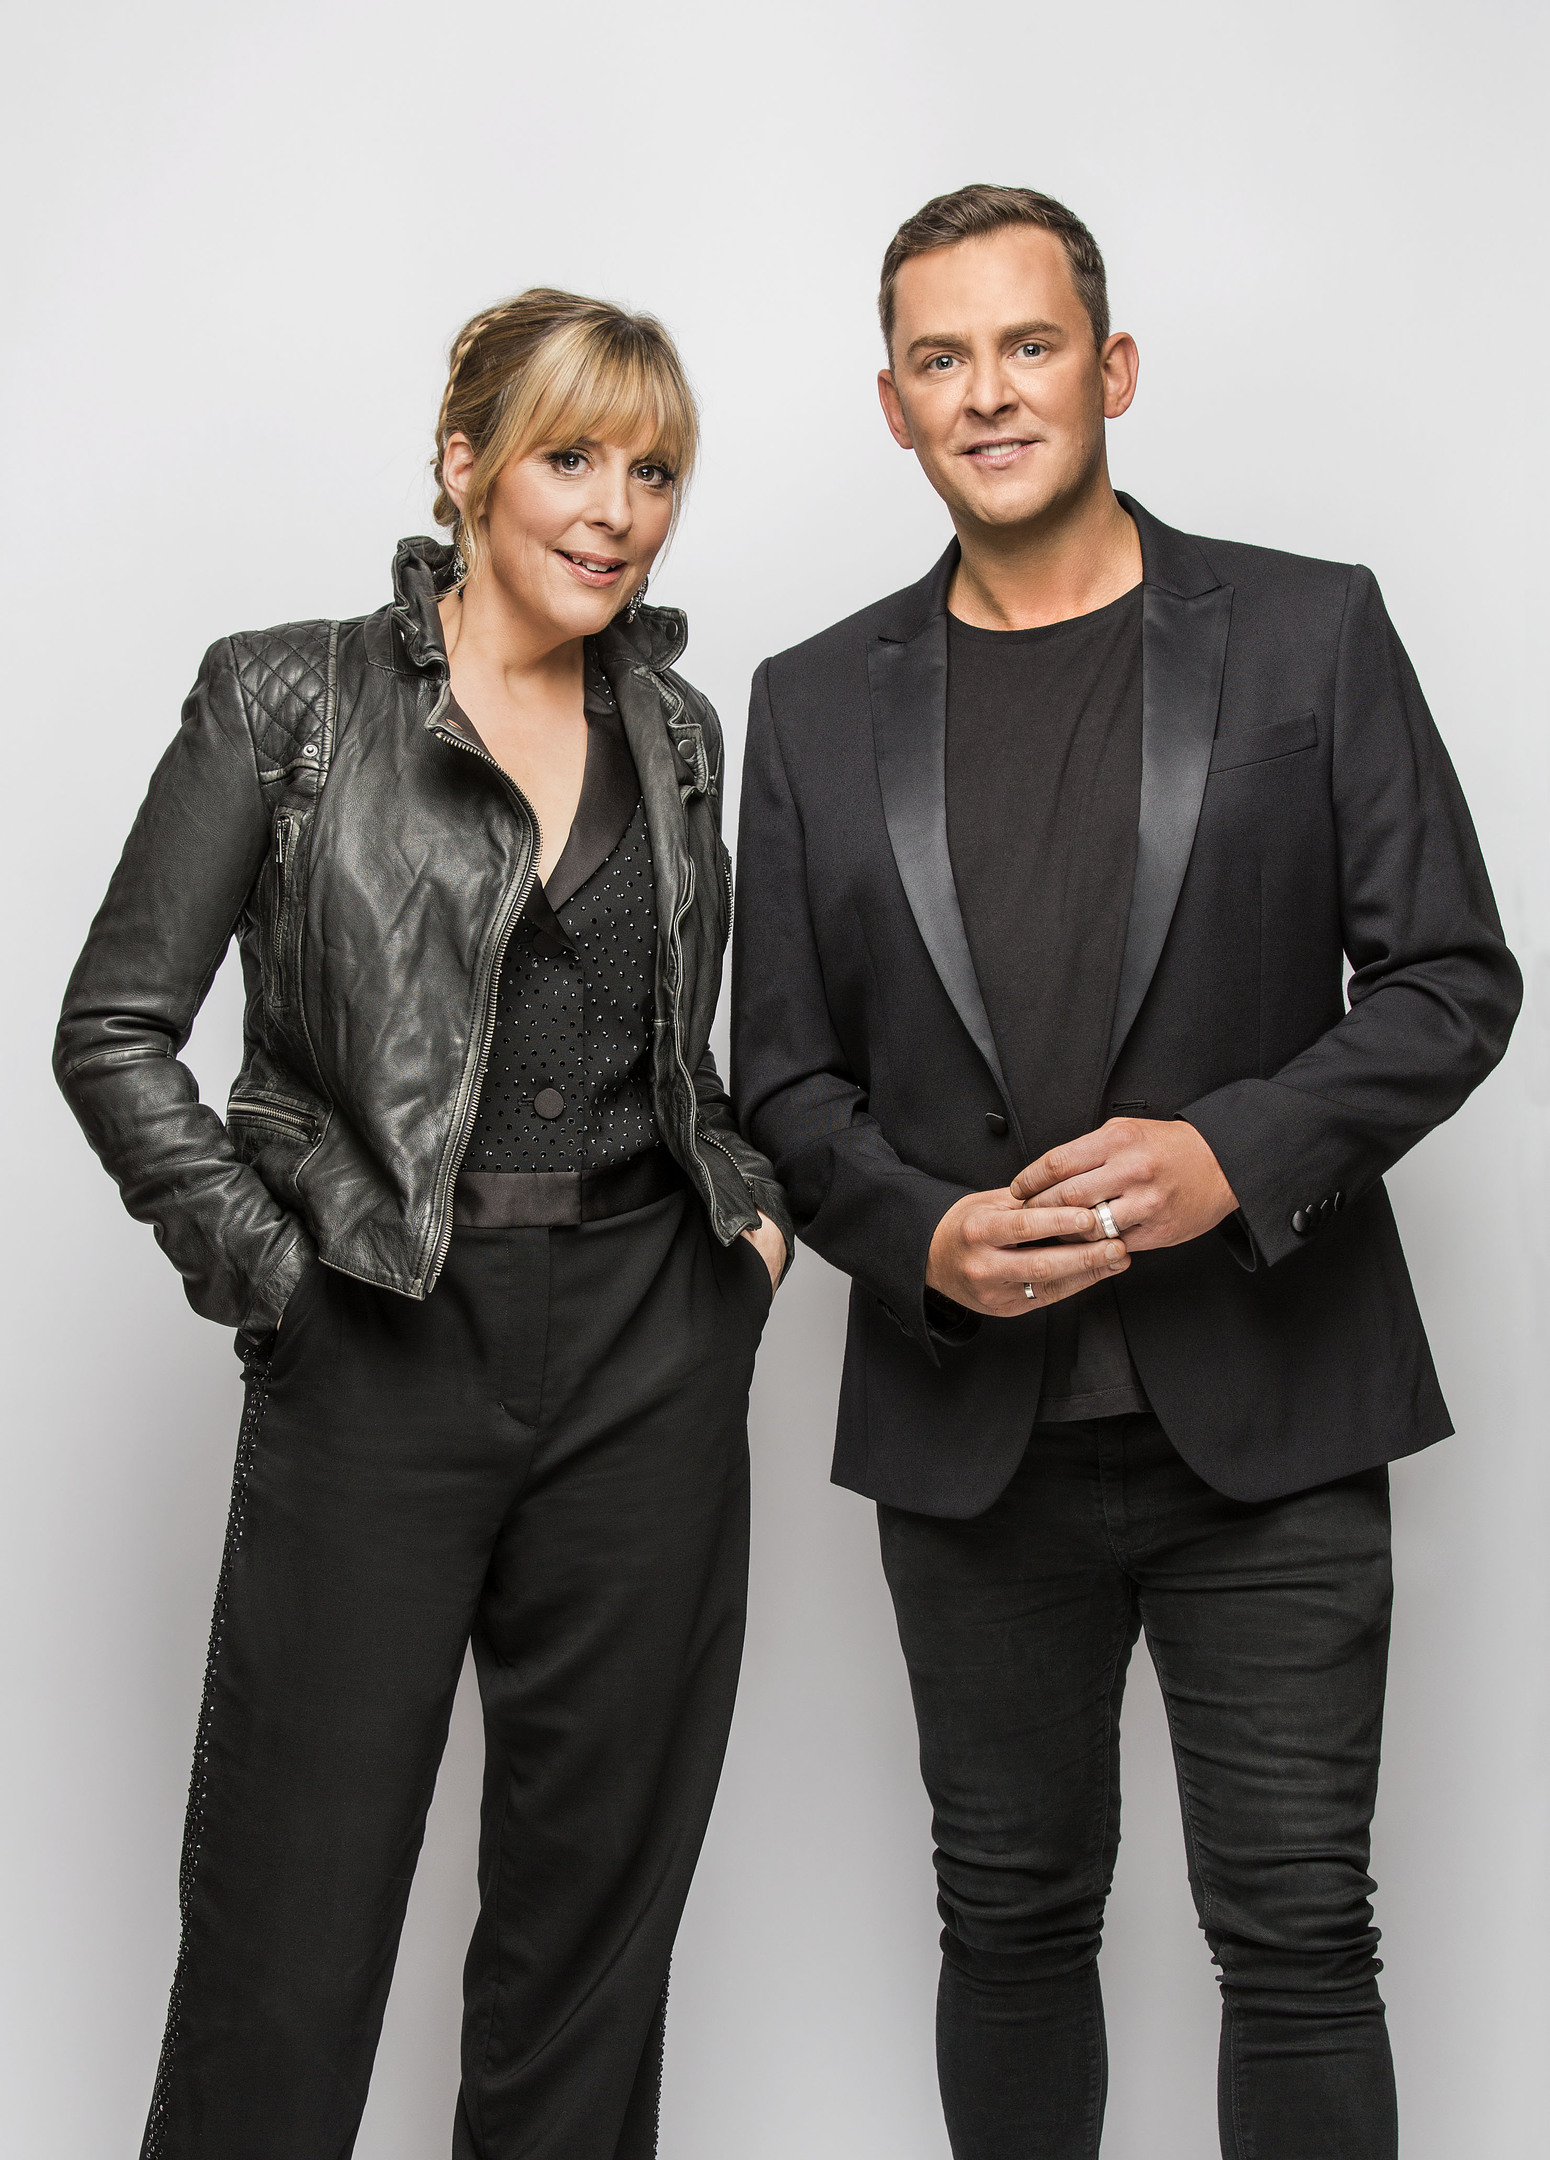 Mel Giedroyc and Scott Mills will host Eurovision 2016 (BBC/ Guy Levy)